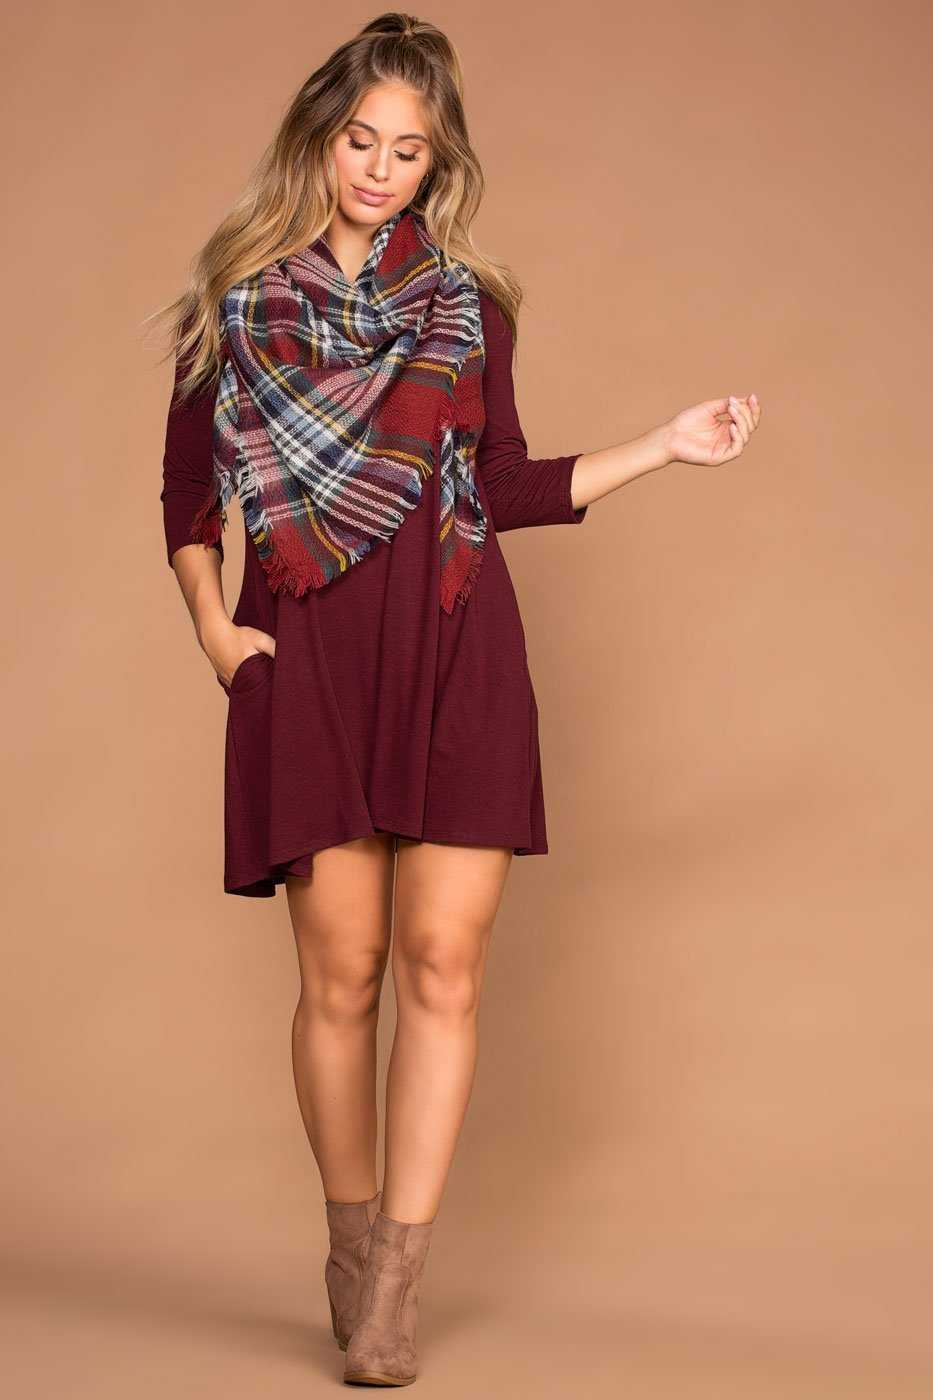 Dresses - Catching Leaves Swing Pocket Dress - Burgundy